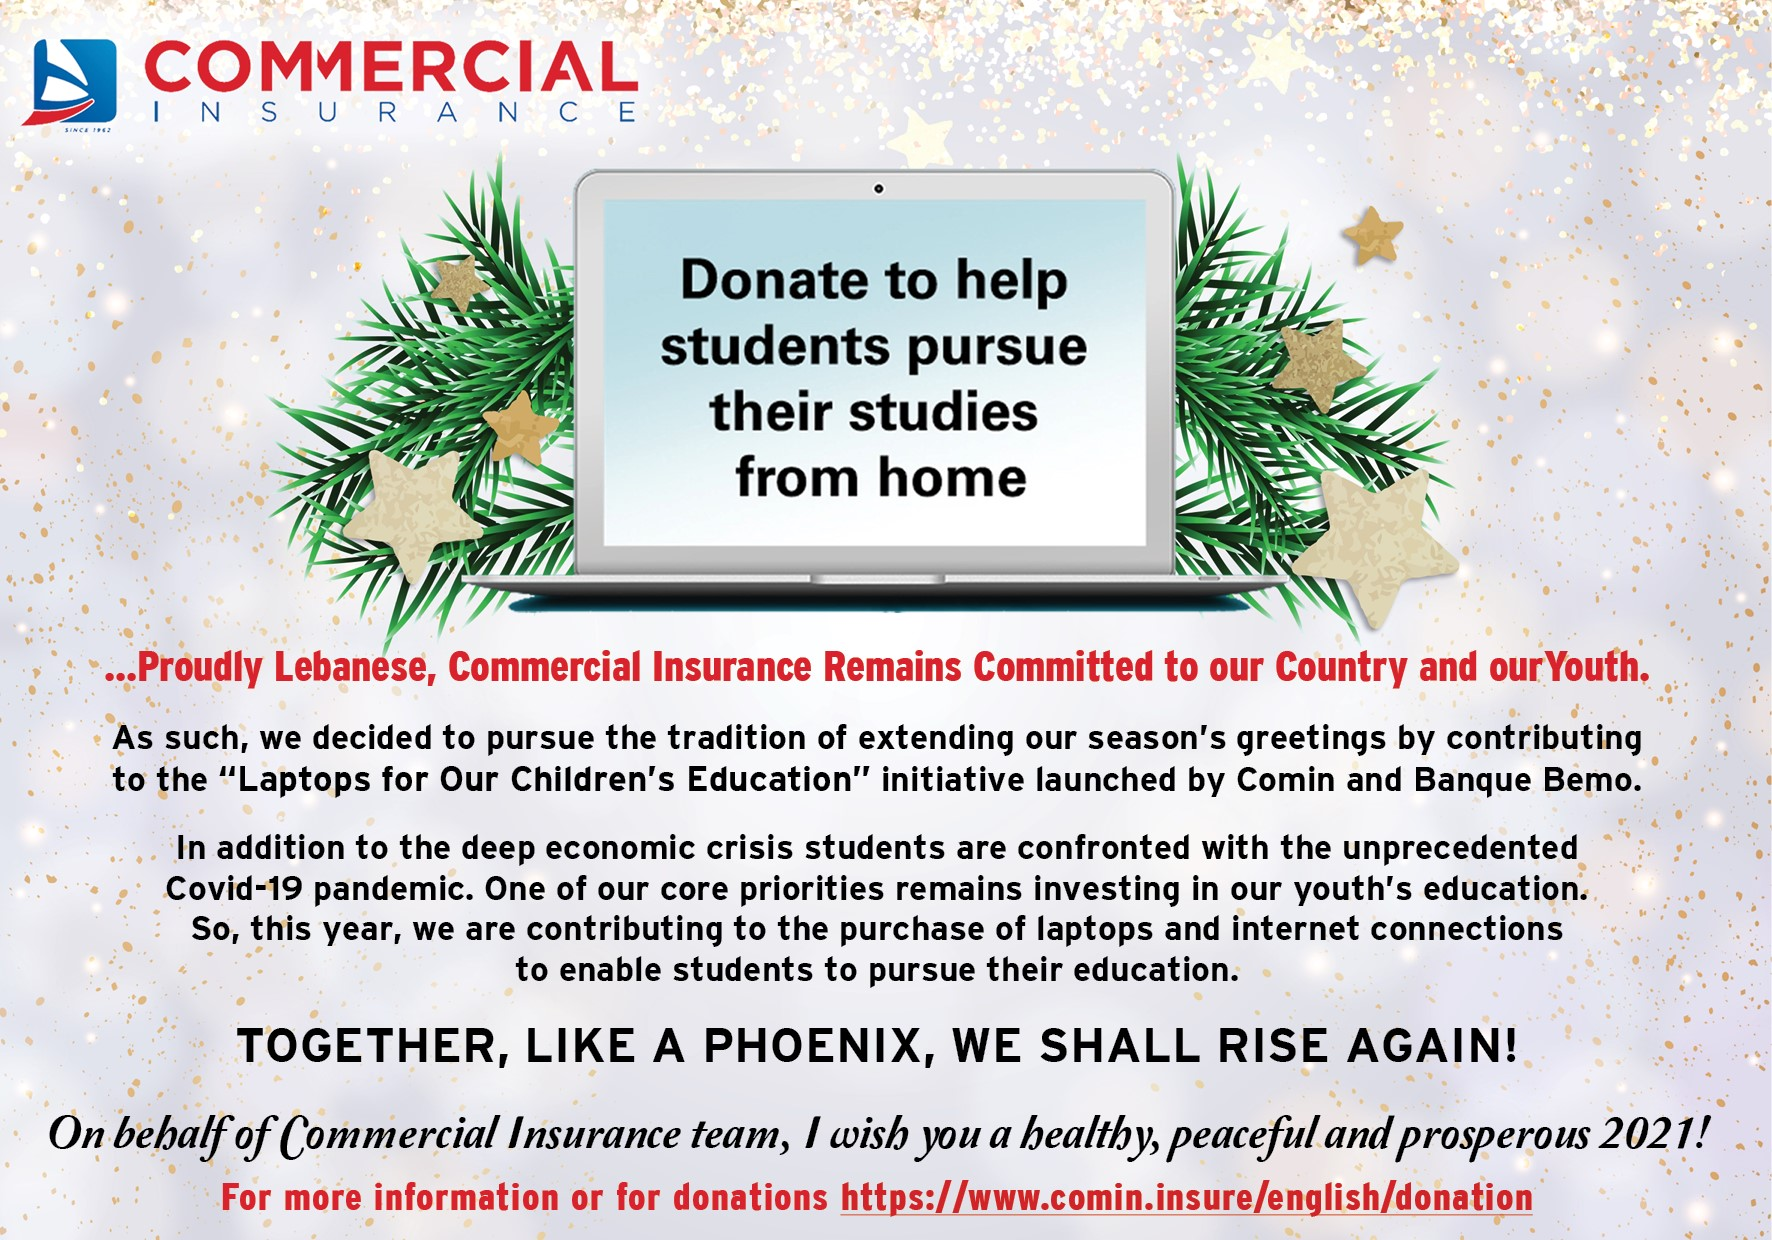 Commercial Insurance - End of Year Communications